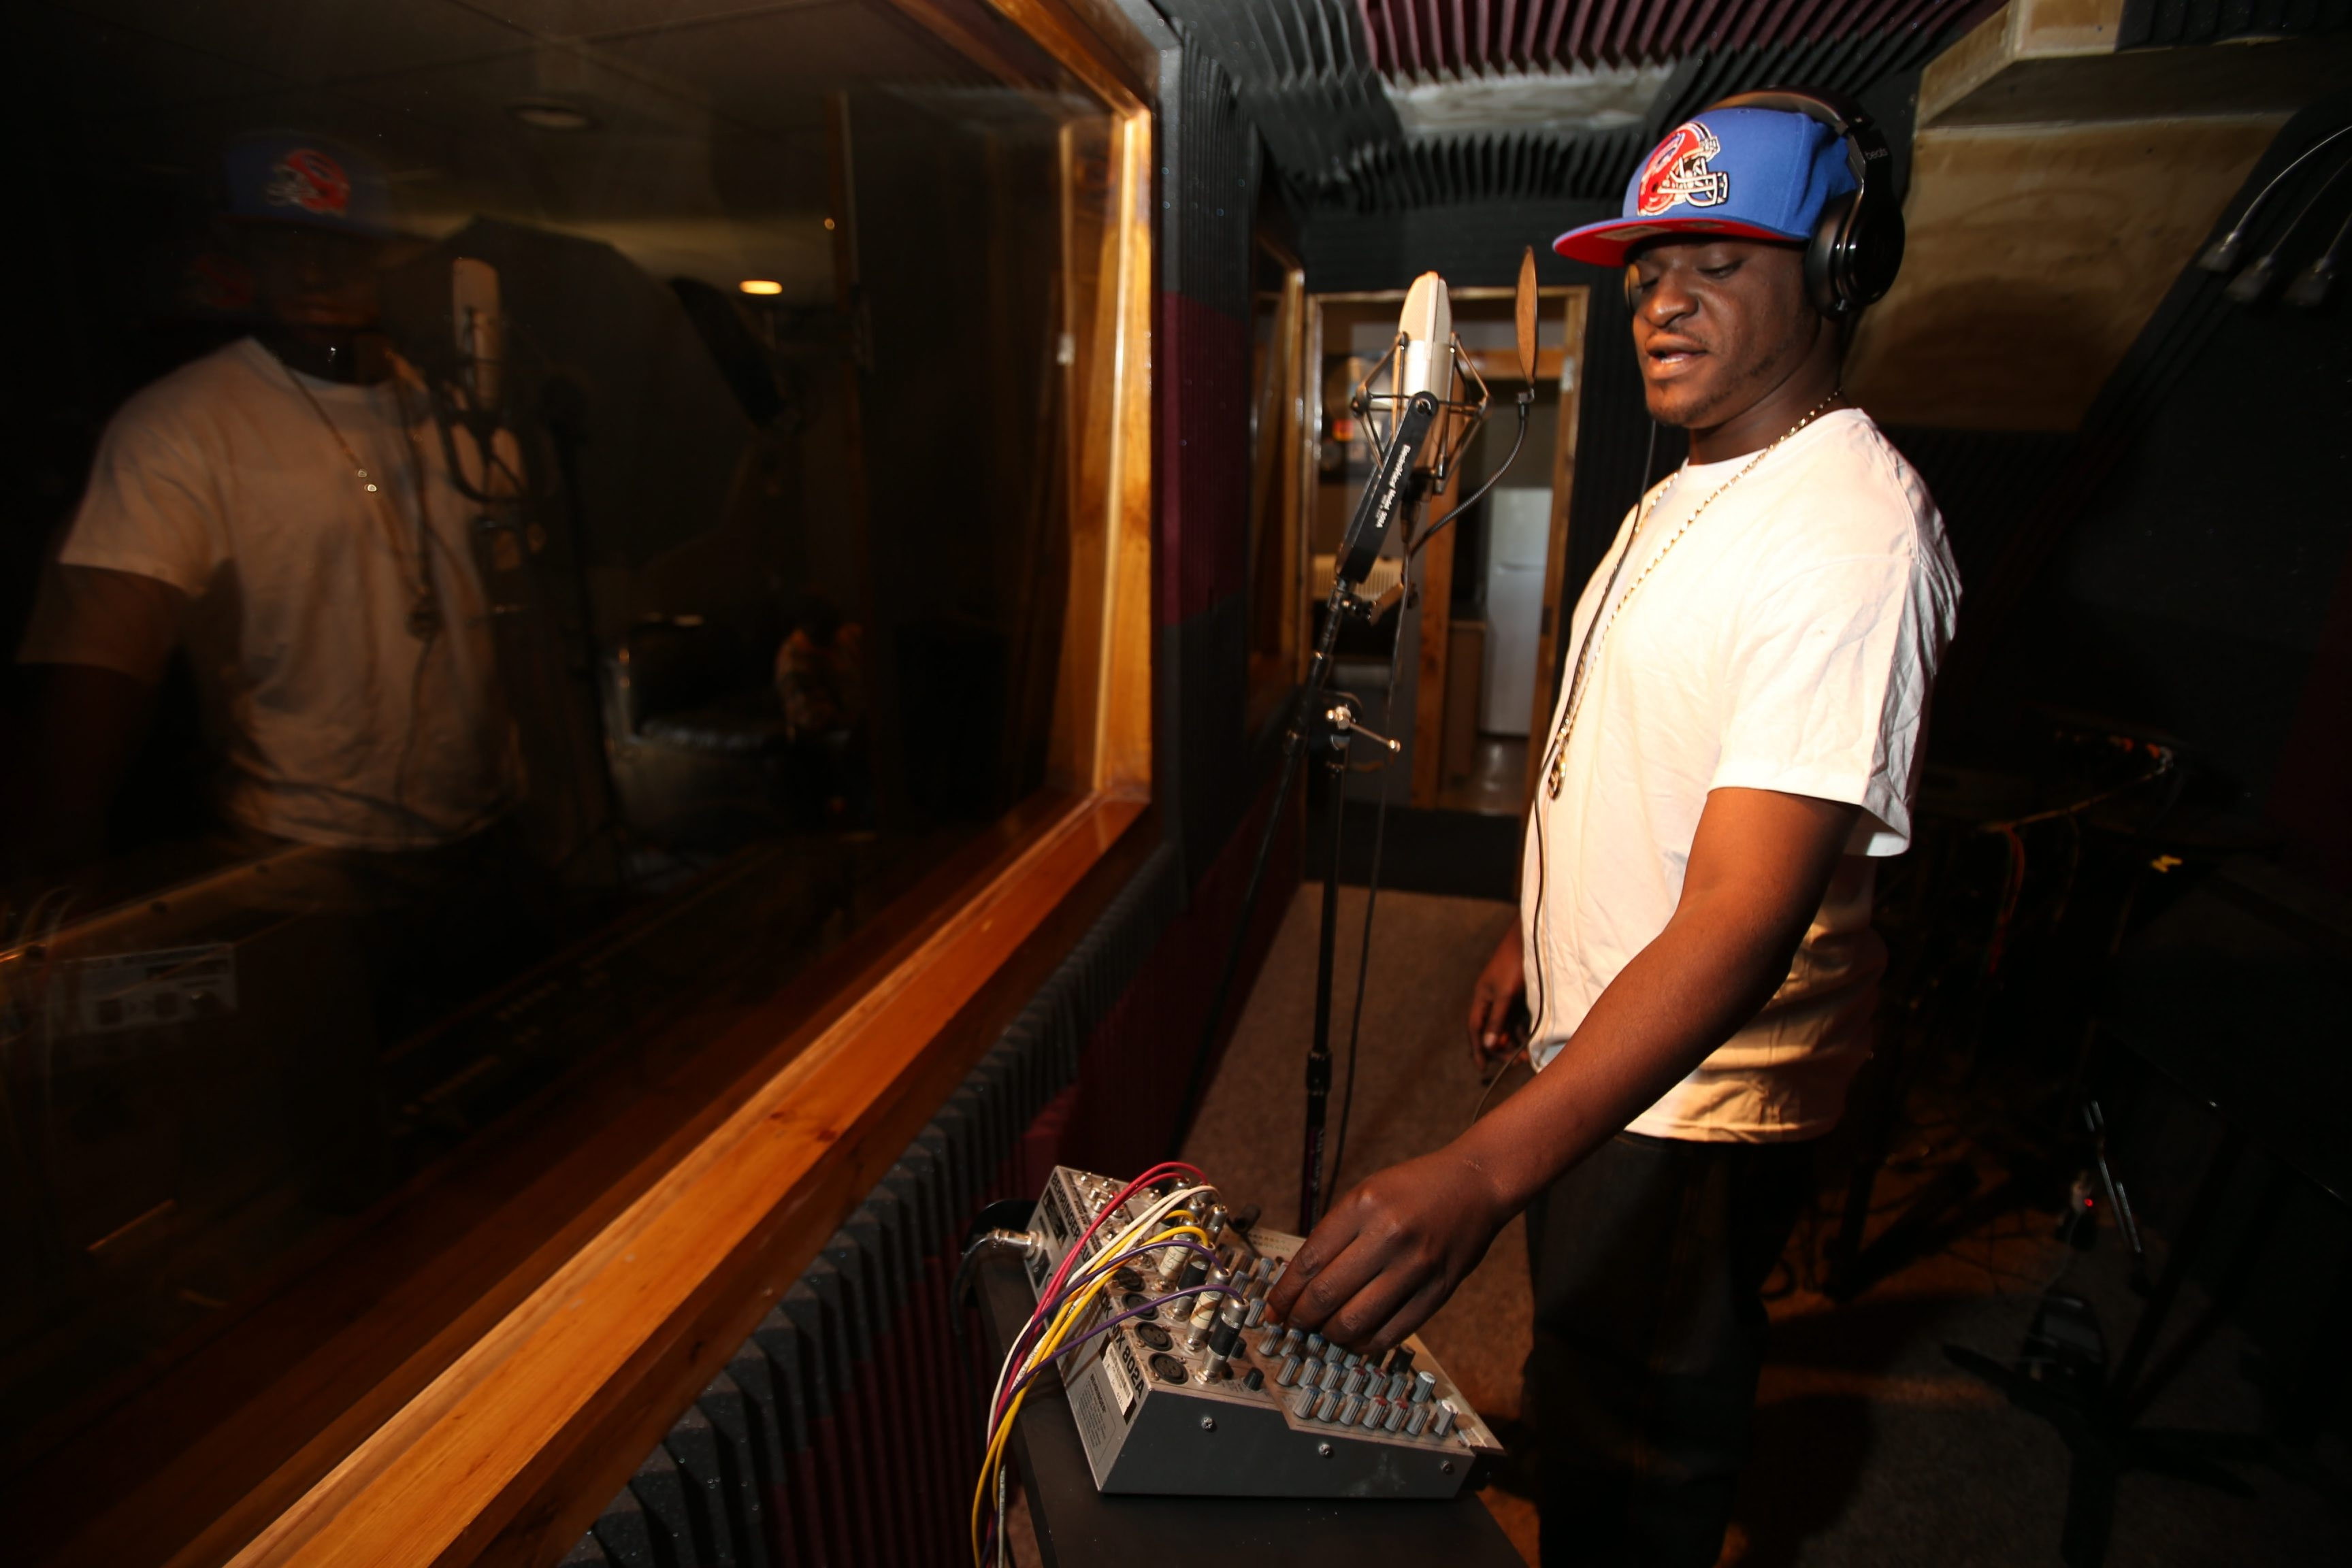 Charles Lewis/Buffalo News     Raycel Brown, in the Buffalo studio where he records, will perform Saturday for Black Entertainment Television's annual Hip-Hop Awards after-party in Atlanta, where he hopes his music will be discovered.